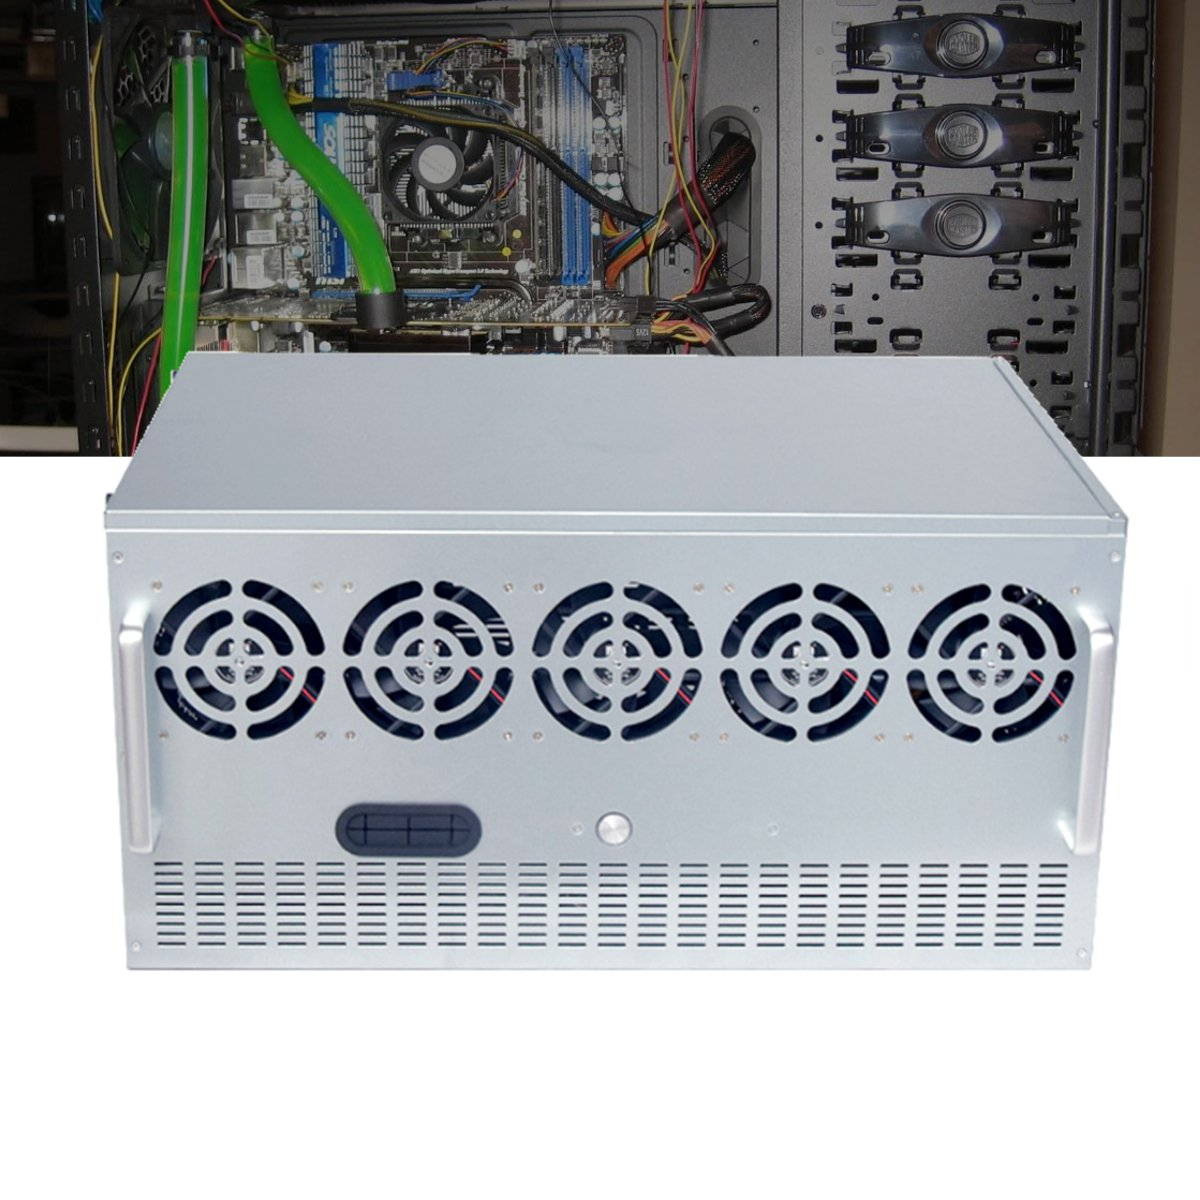 Open Air Mining Frame Rig Graphics Case Atx Power Supply Fit Segotep Ramadan 3 12xgpu Bays 10xfans 2xpower Supplye Mount Slot In Pc Supplies From